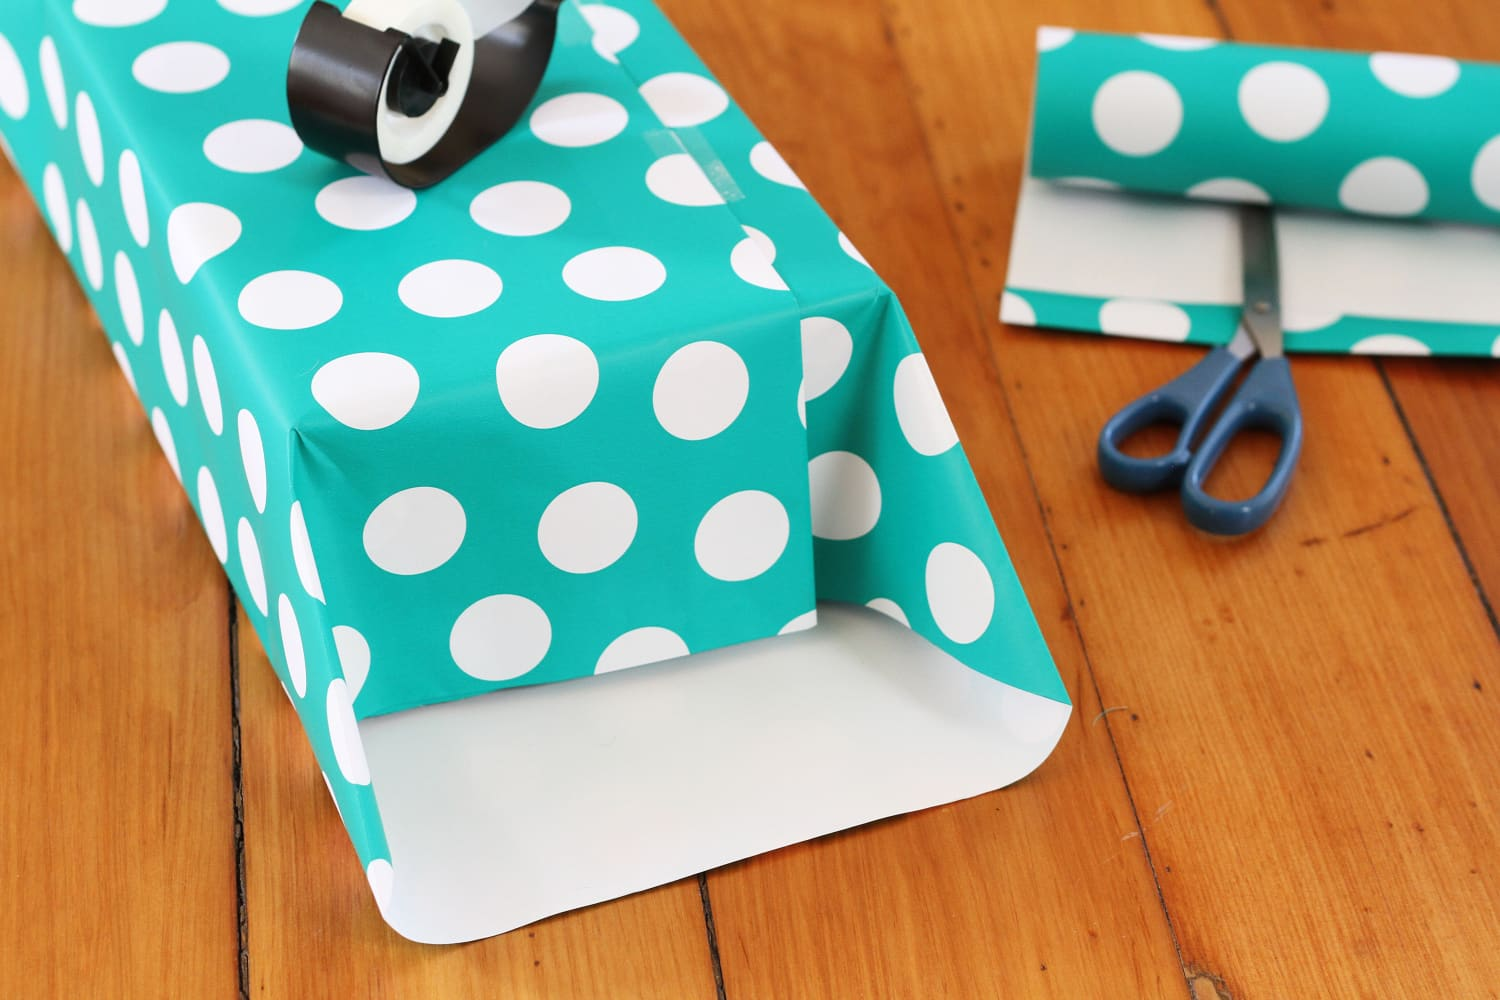 One 5-Minute Thing You Can Do This Weekend to Make Wrapping Gifts Easier Later